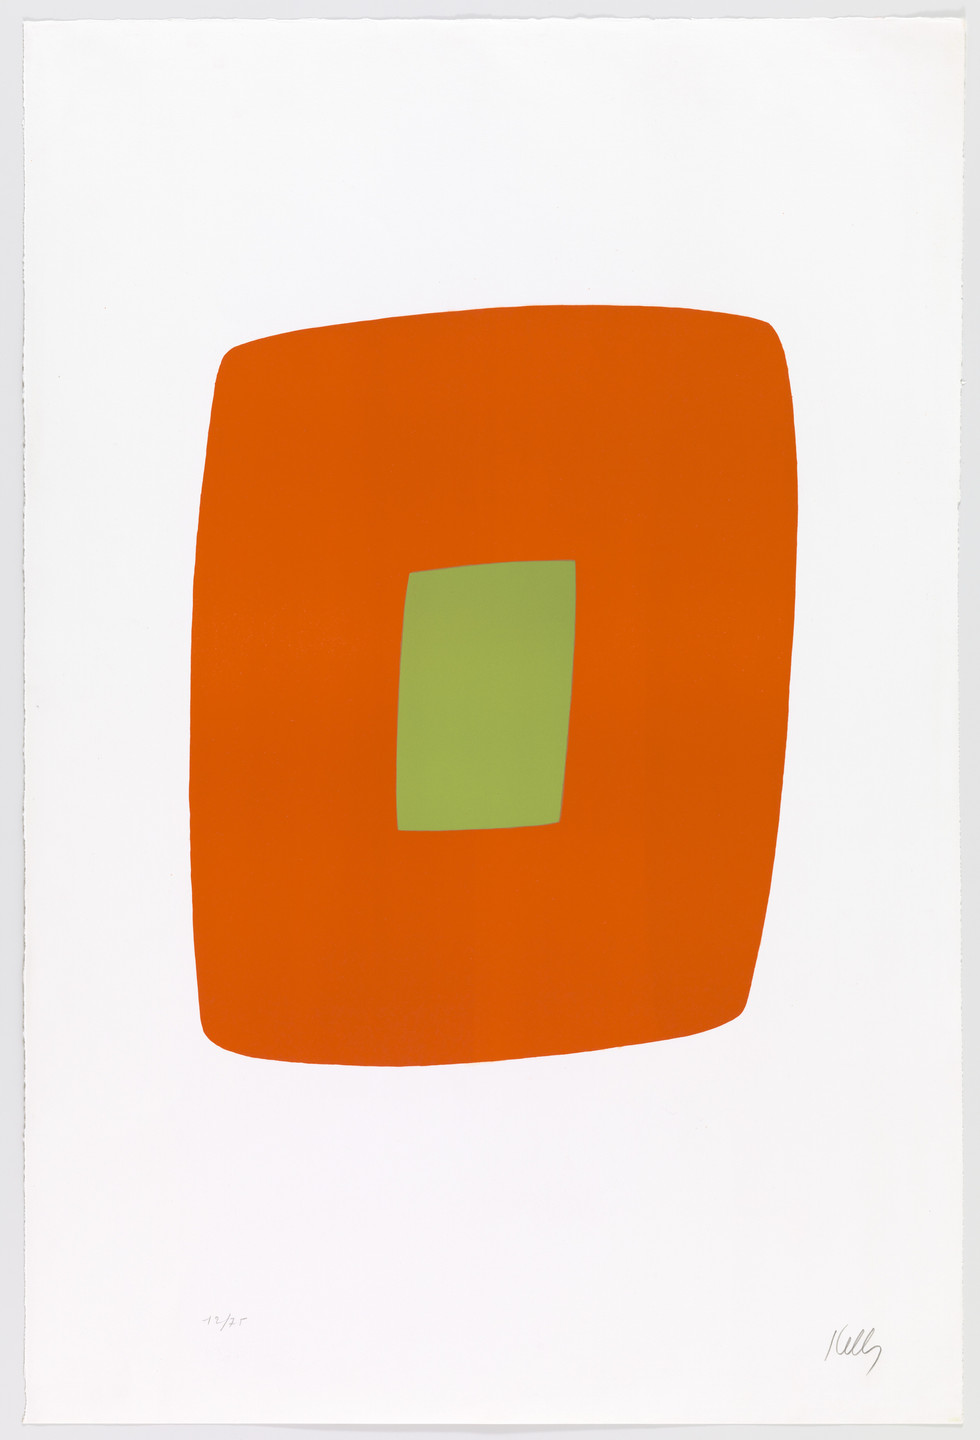 Ellsworth Kelly. Orange with Green (Orange avec vert) from Suite of Twenty-Seven Color Lithographs. 1964–65